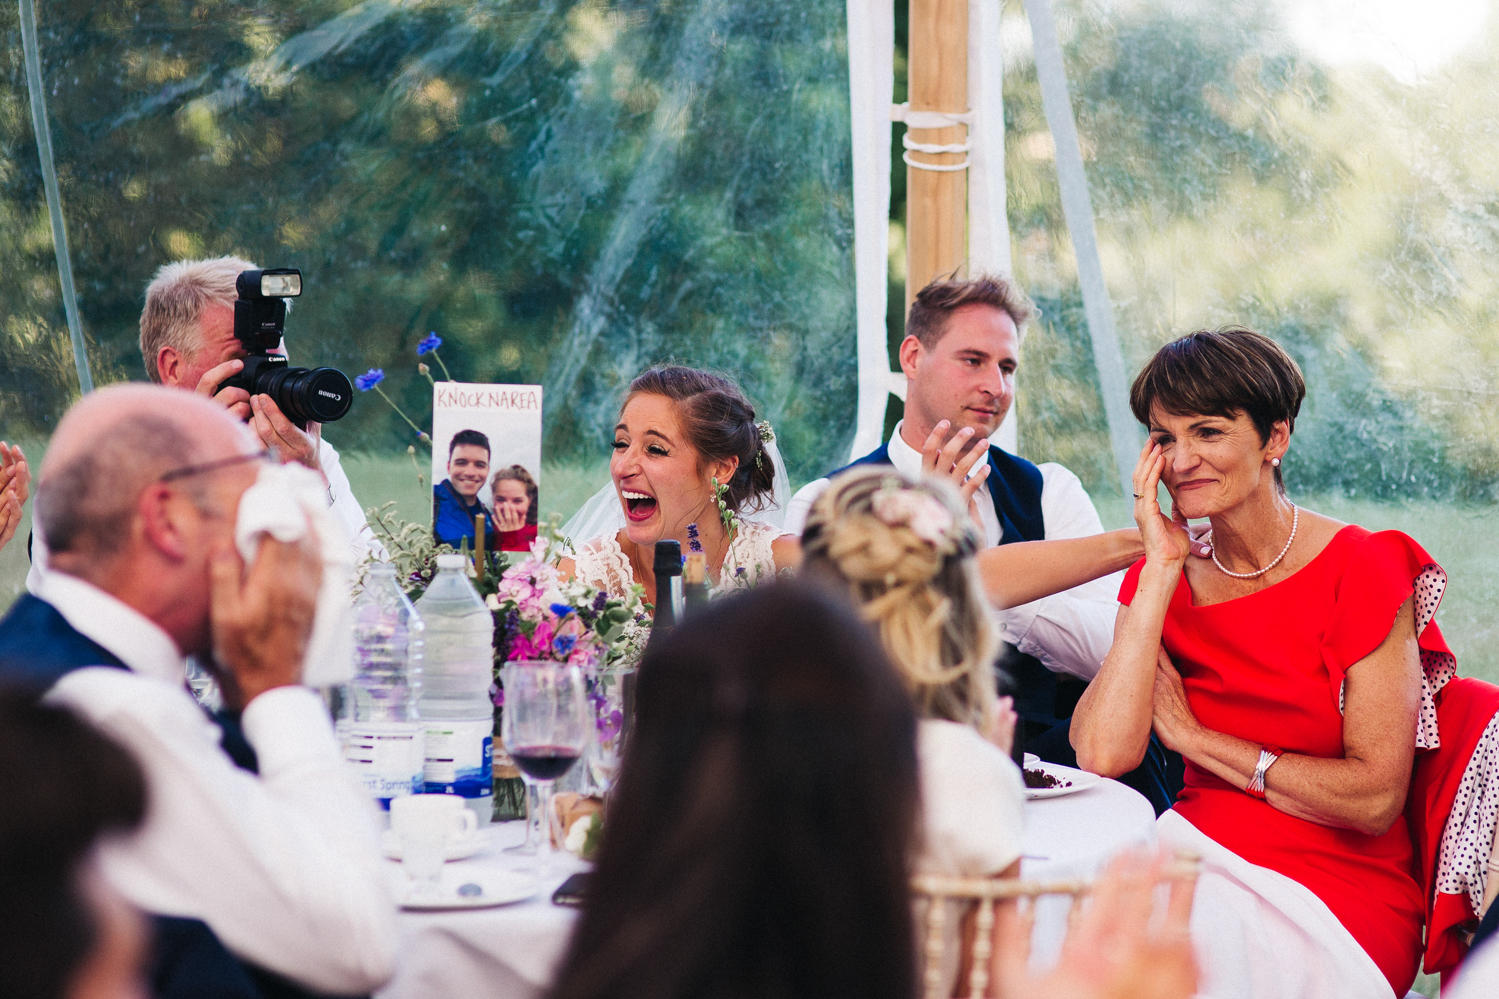 creative-relaxed-wedding-photography-stop-motion-films-teesside-north-east-yorkshire-0026.jpg